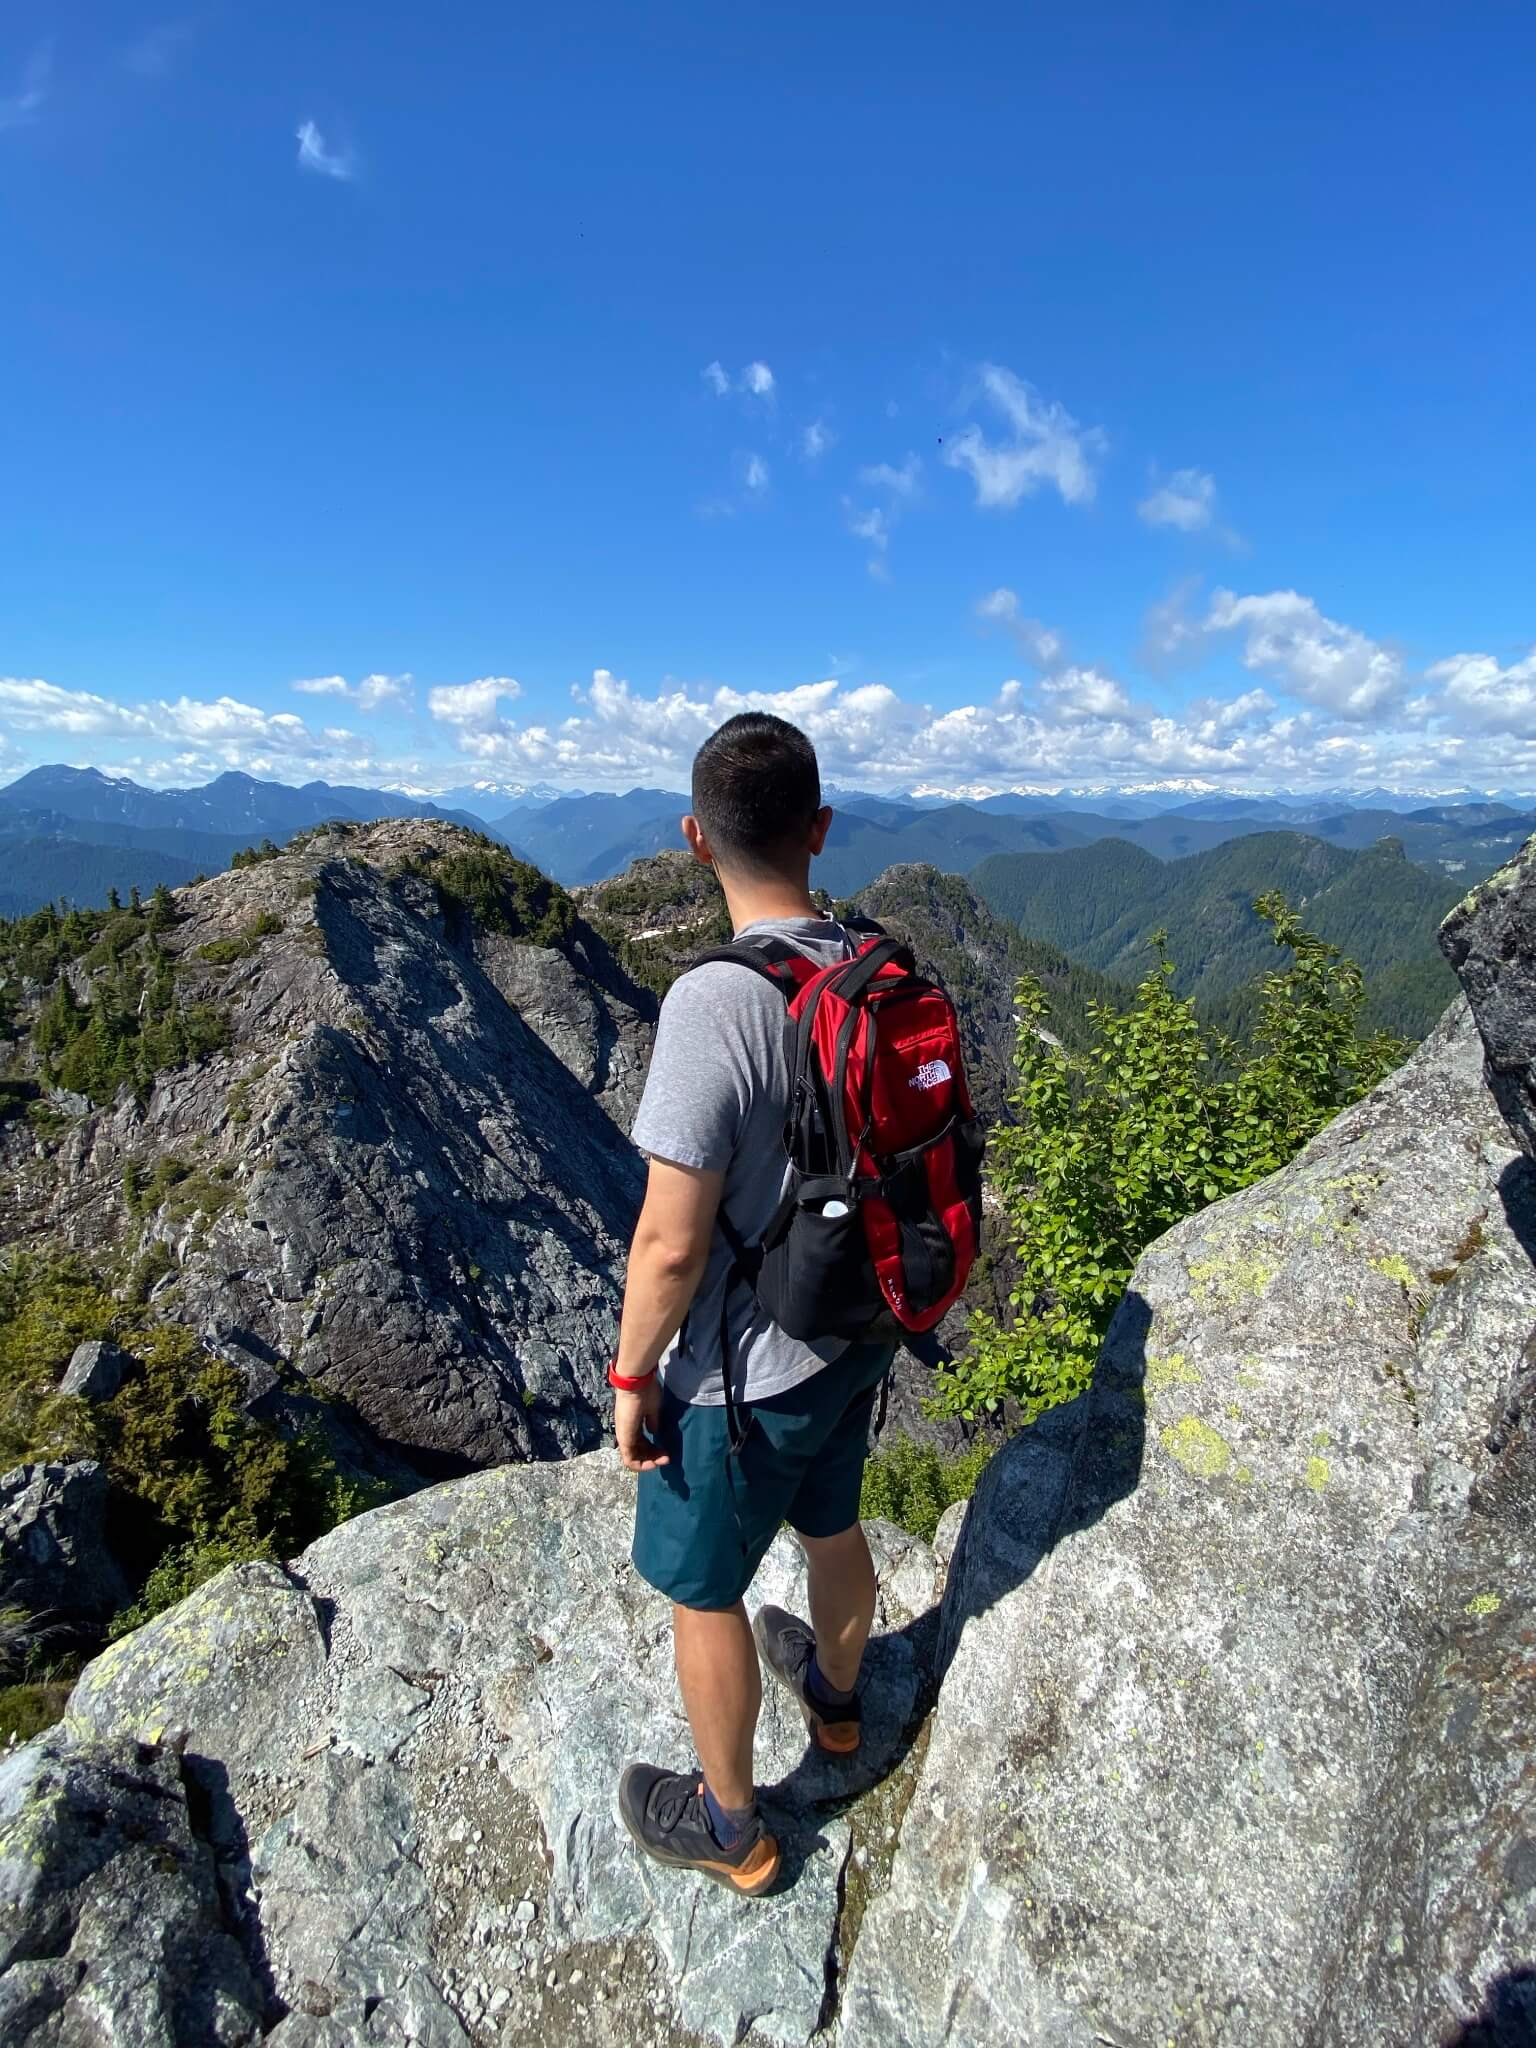 Taken at the top of Crown Mountain, with North Shore mountains in the background.